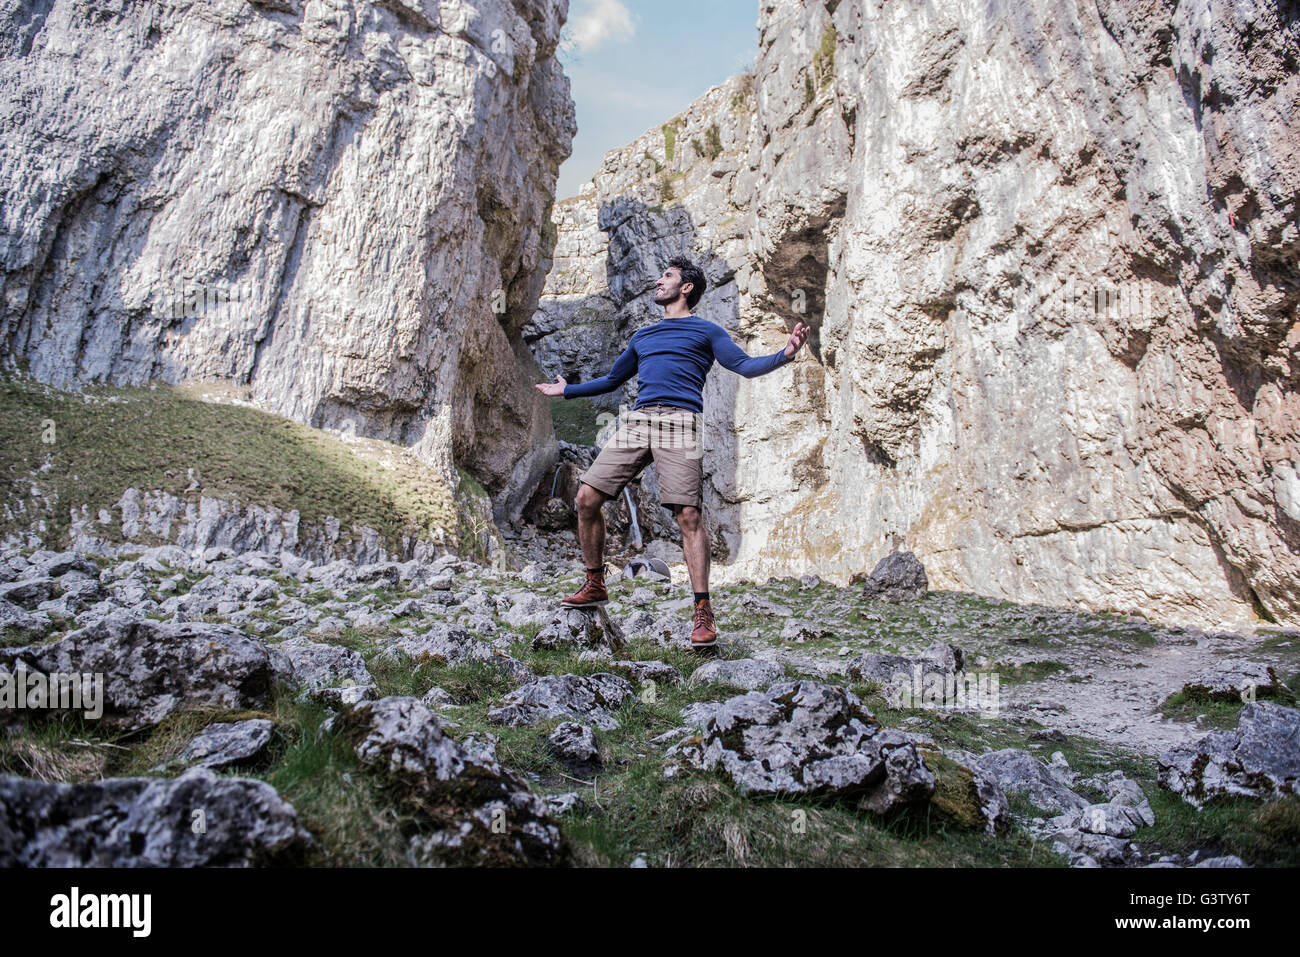 A man standing with arms aloft in rugged terrain. - Stock Image